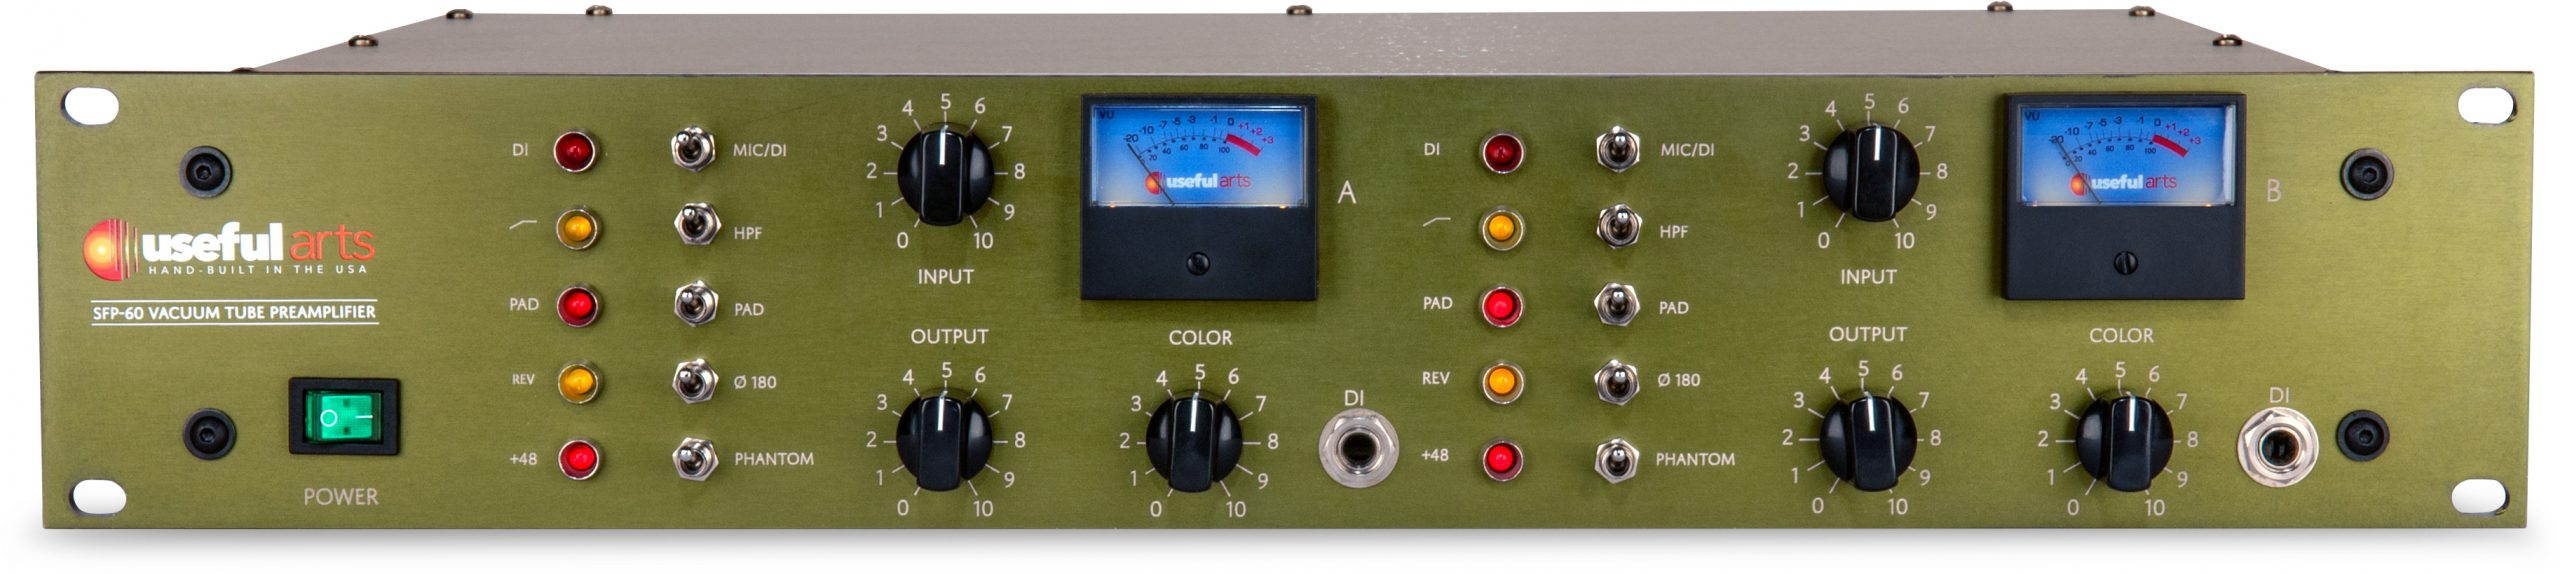 Useful Arts Audio SFP60 Mic Preamp